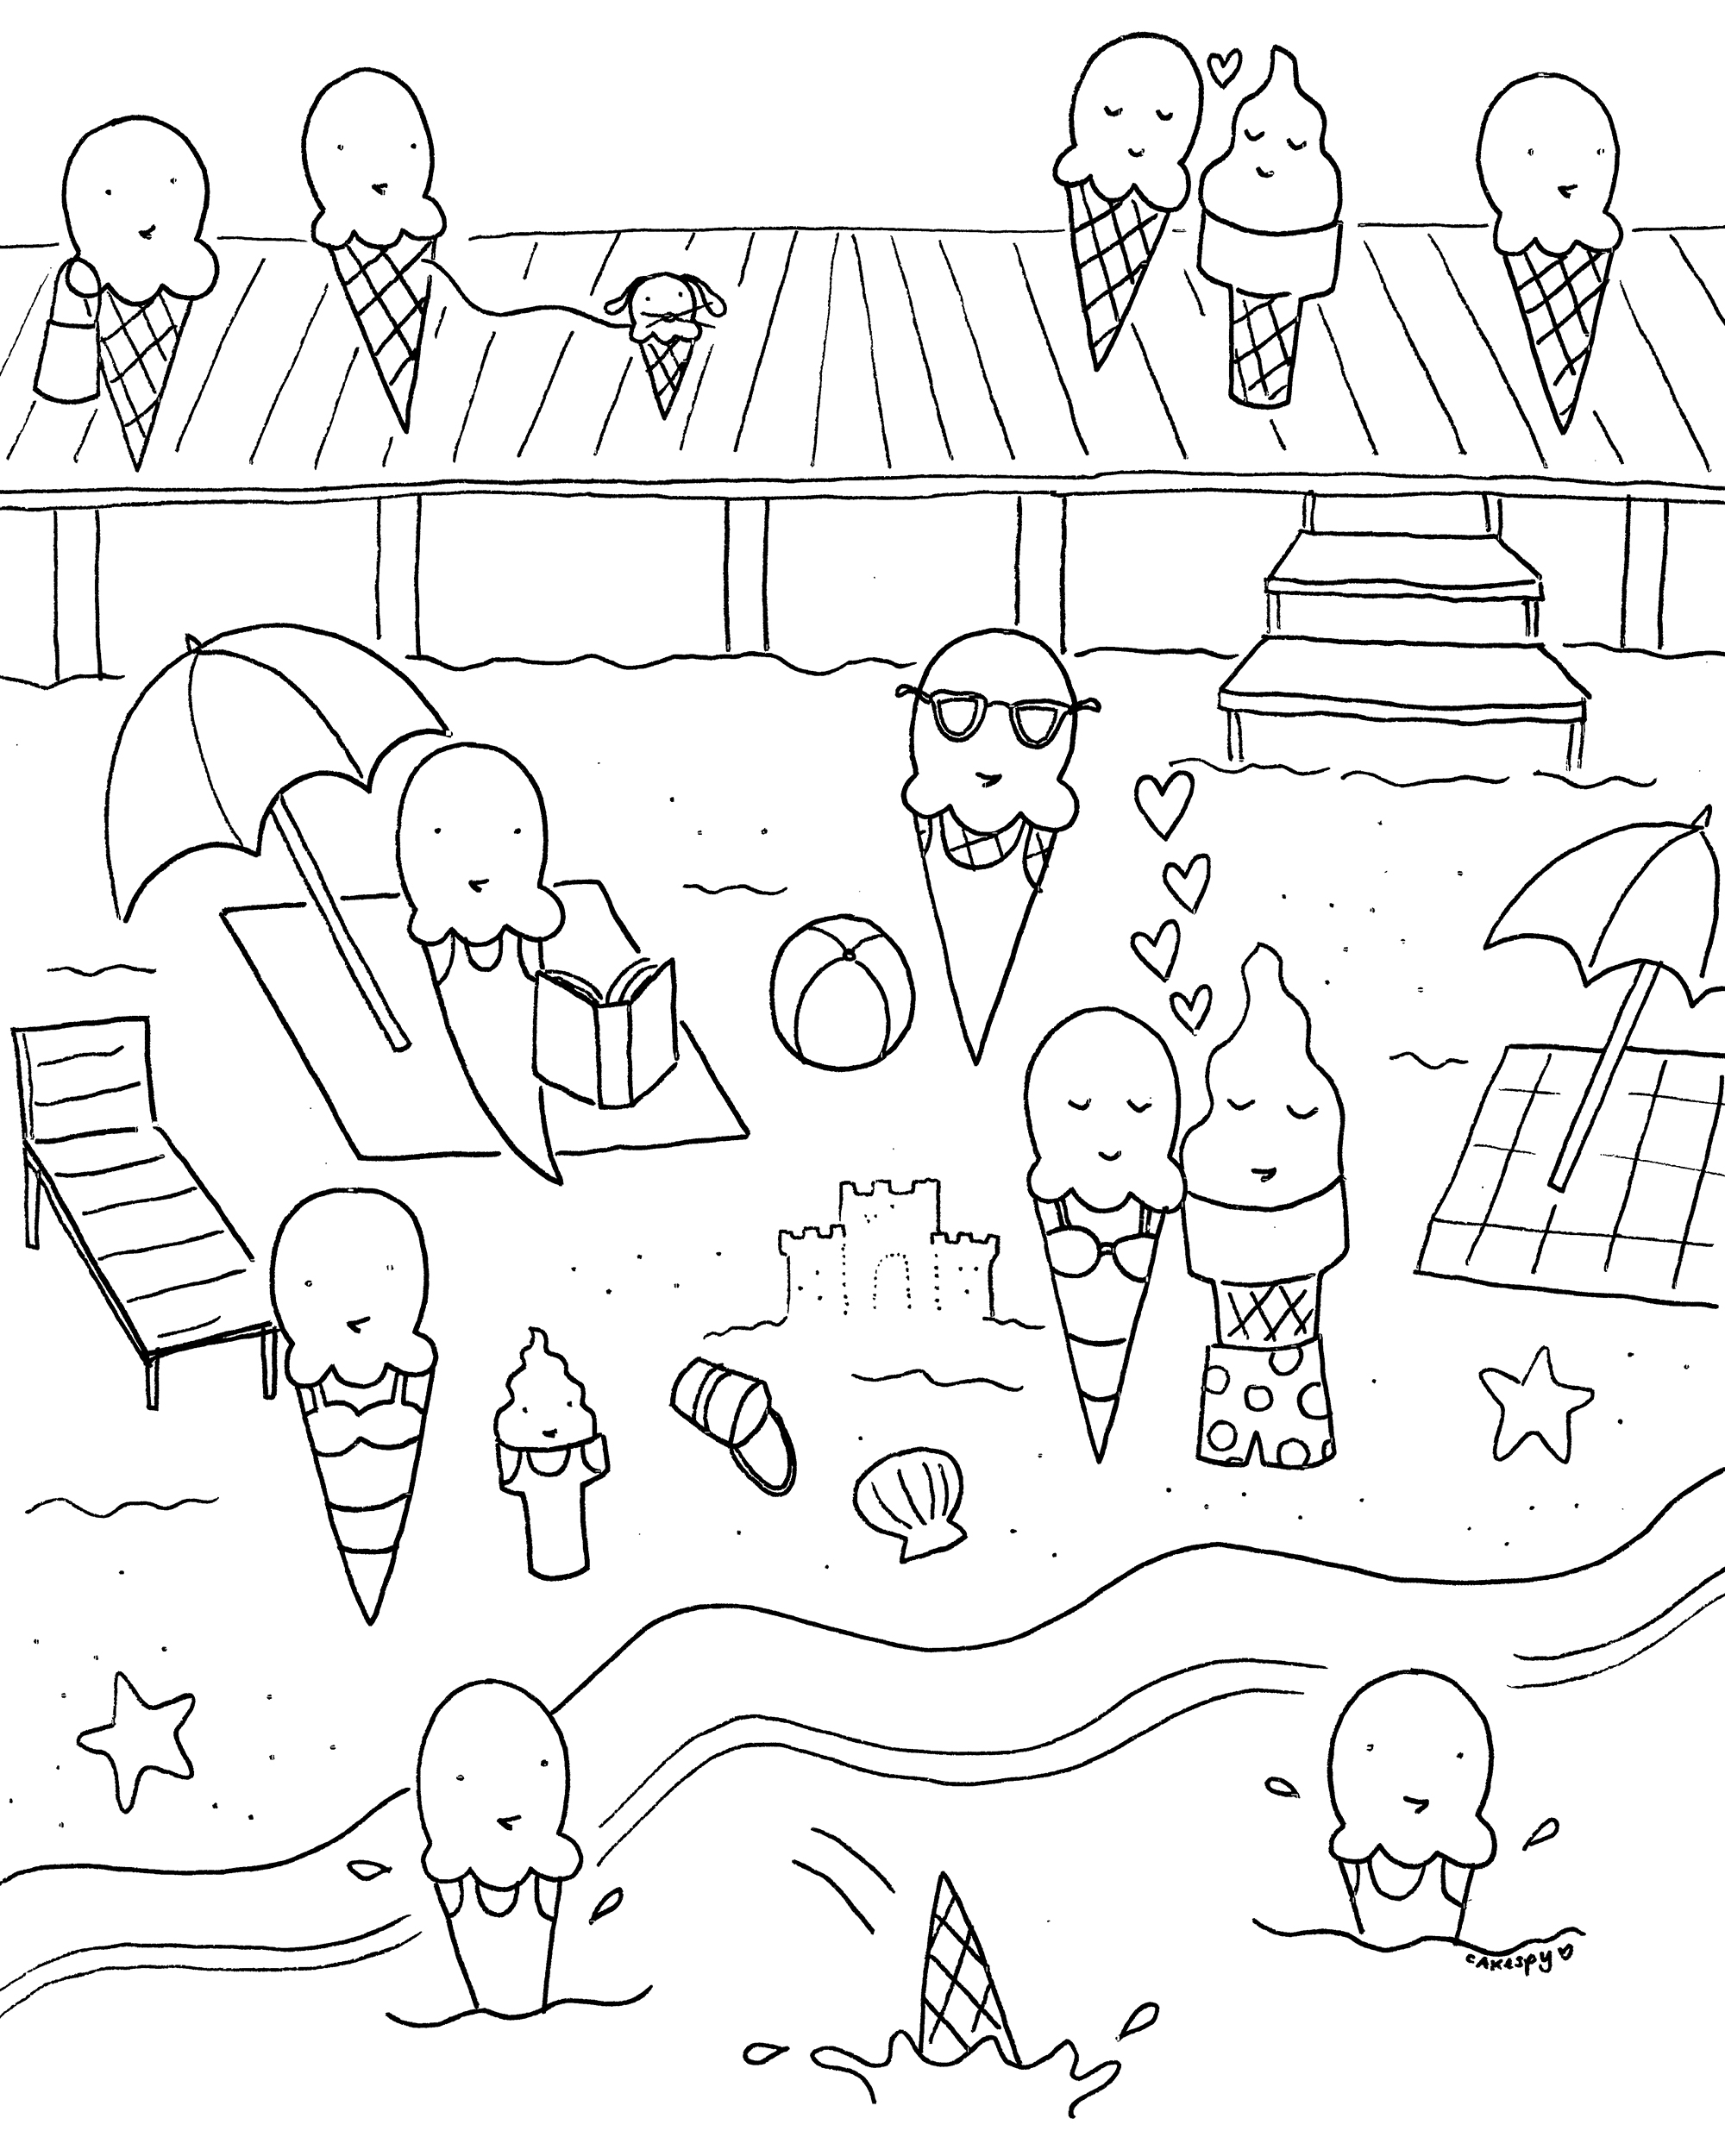 Ice cream at the shore coloring book page